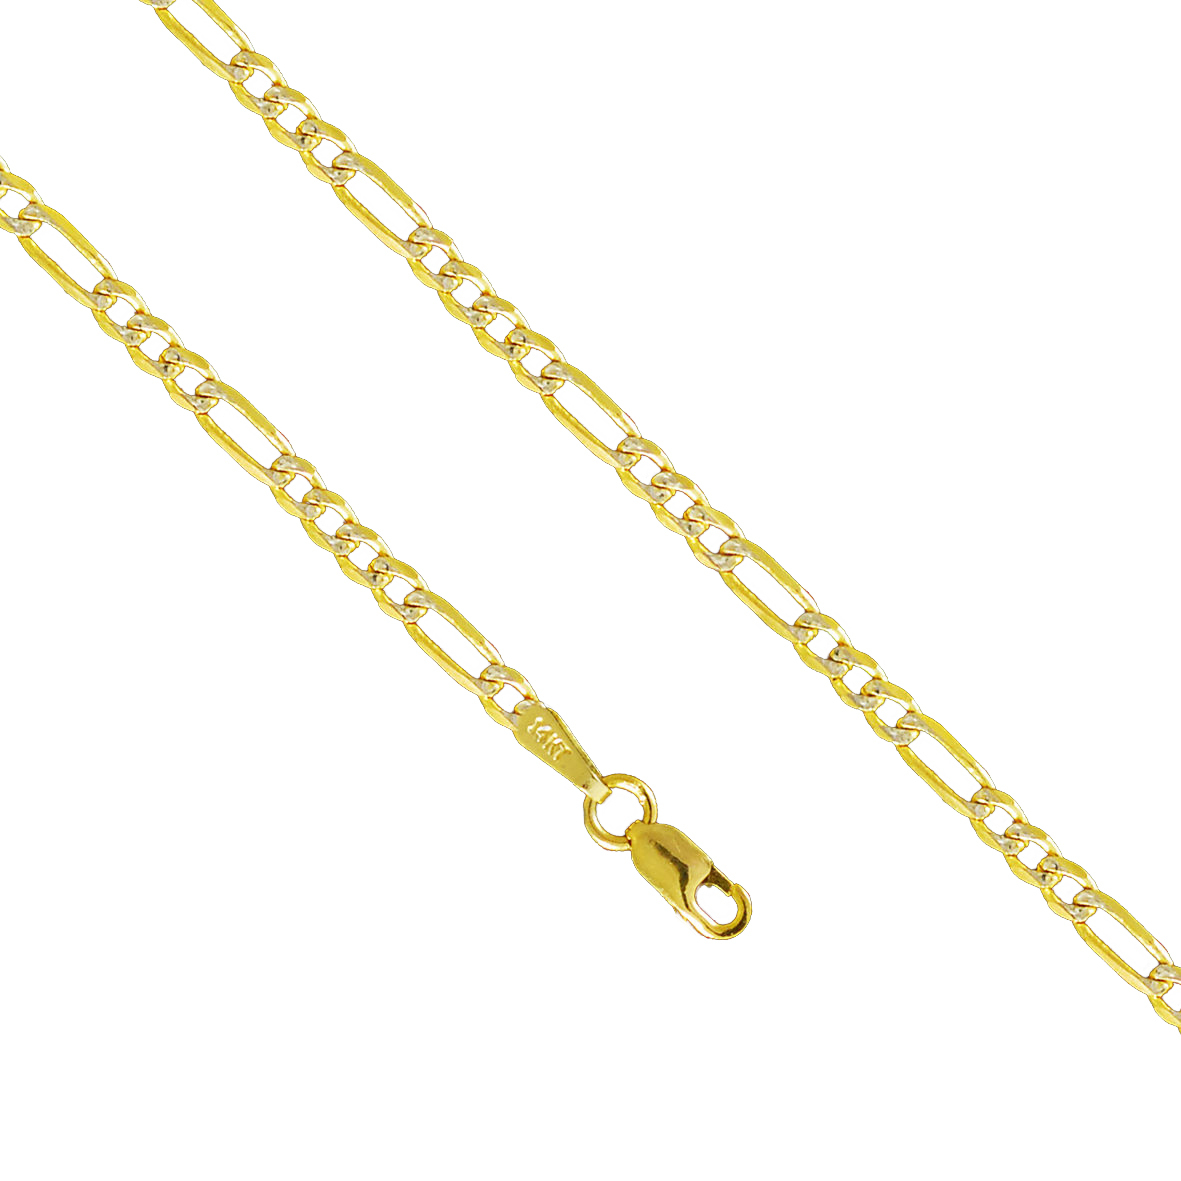 14K Yellow Gold 2.4mm Figaro Diamond Cut Pave Necklace Link Lobster Clasp (24 Inches) by Paradise Jewelers